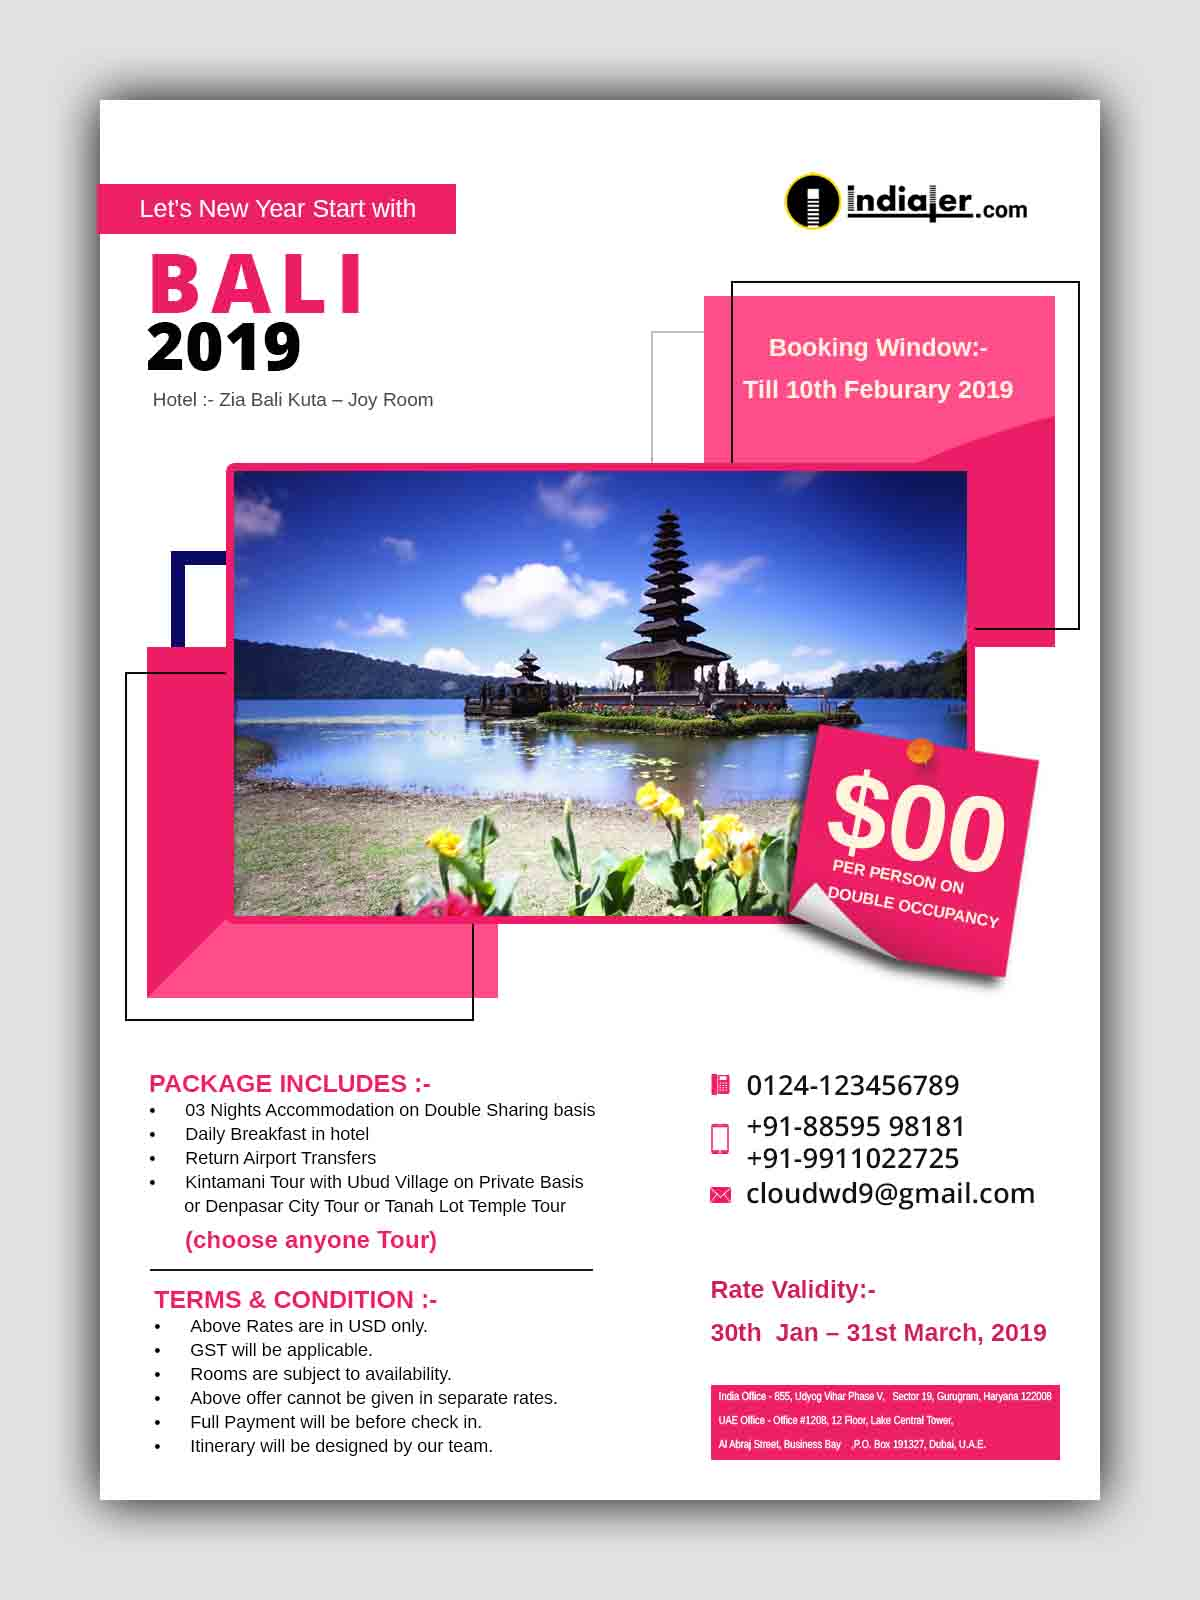 let-new-year-start-with-bali-travel-flyer-psd-template